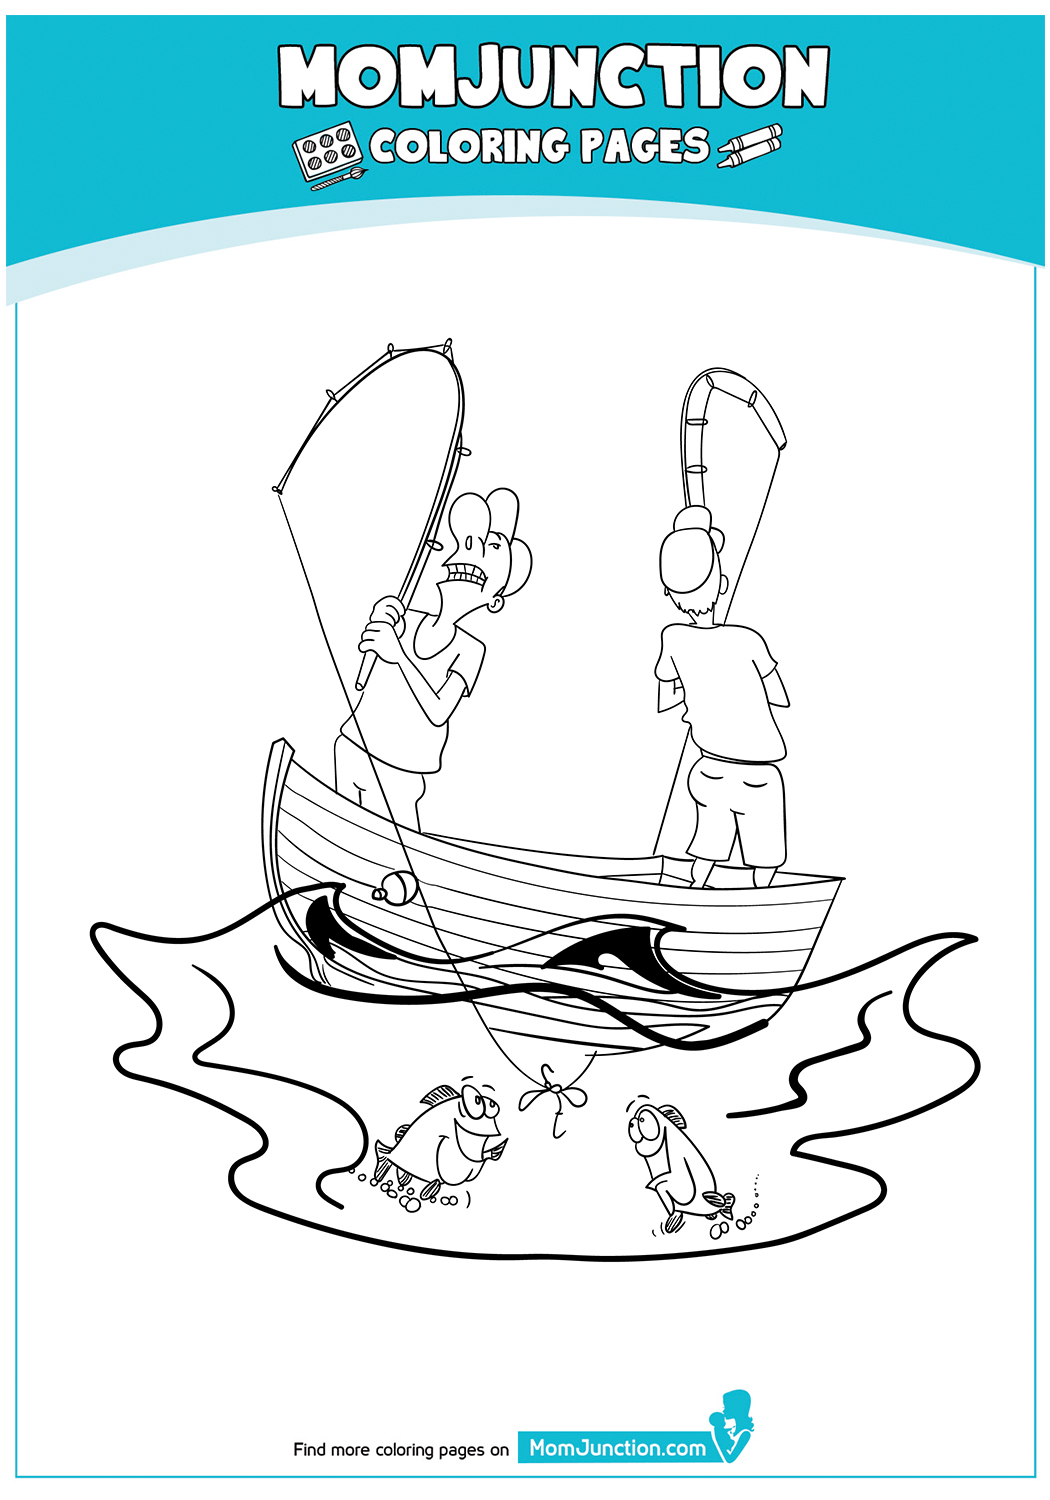 Amusing-Coloring-Page-Of-A-Fishermen-17